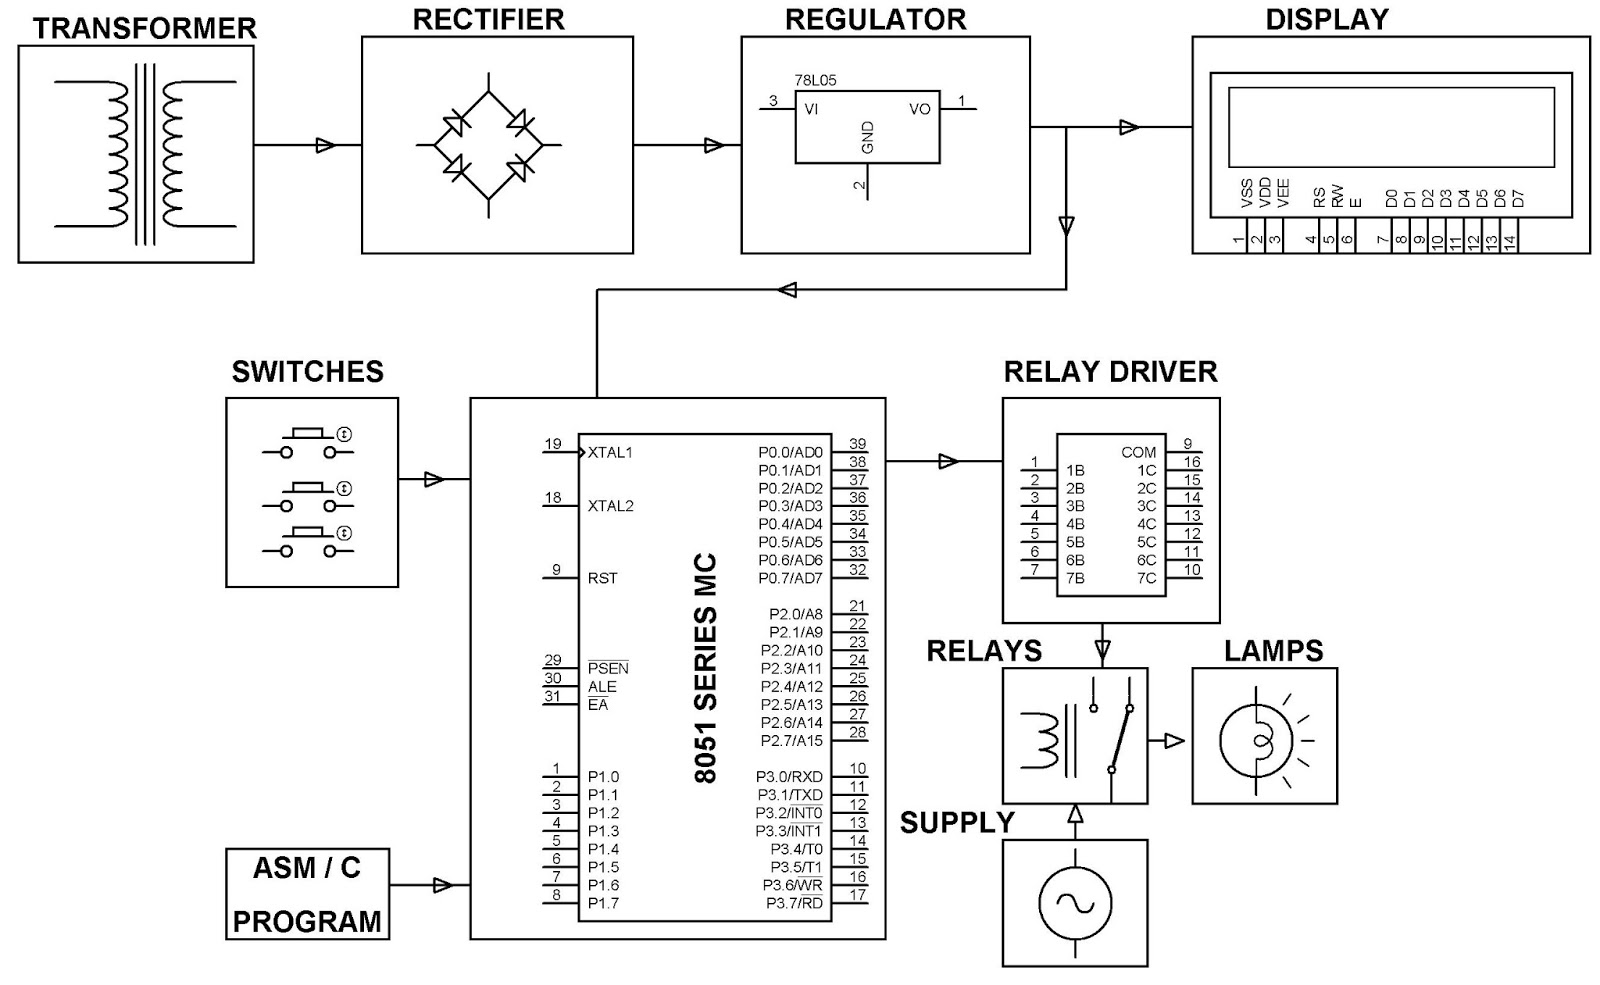 Electronics Project Malaysia Programmable Switching Control For Industrial Automation In